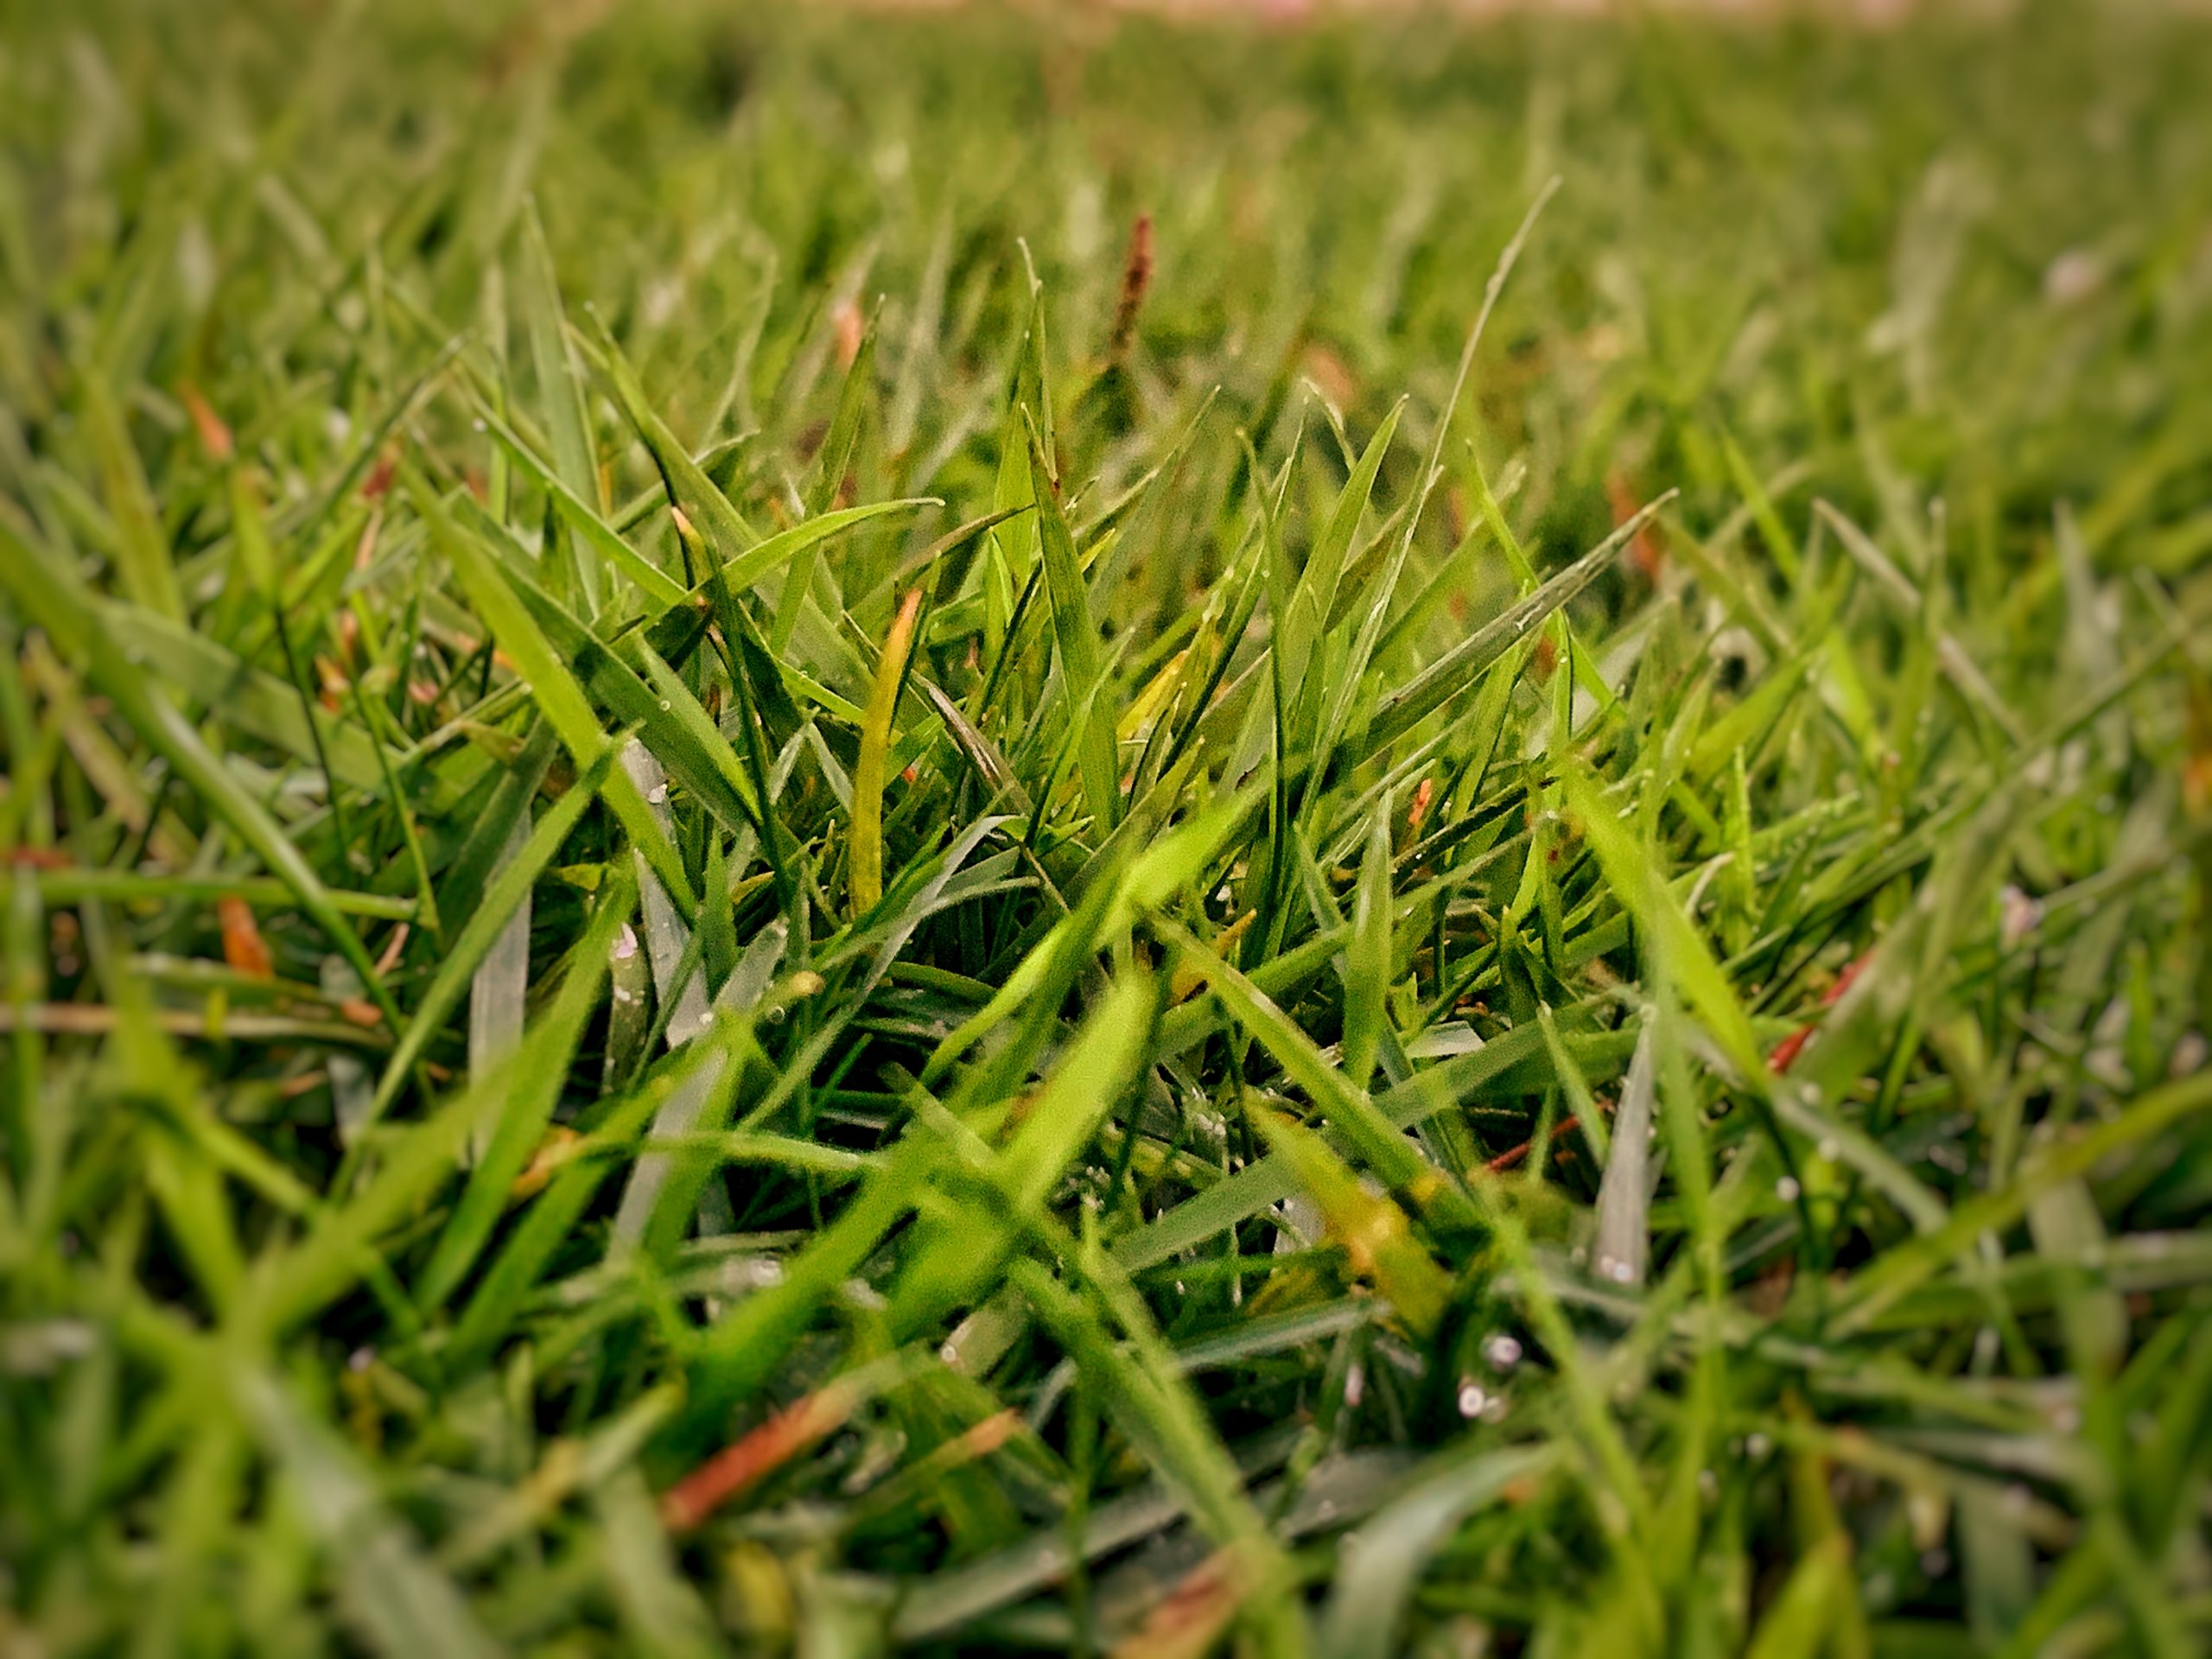 Green grass with dewdrops